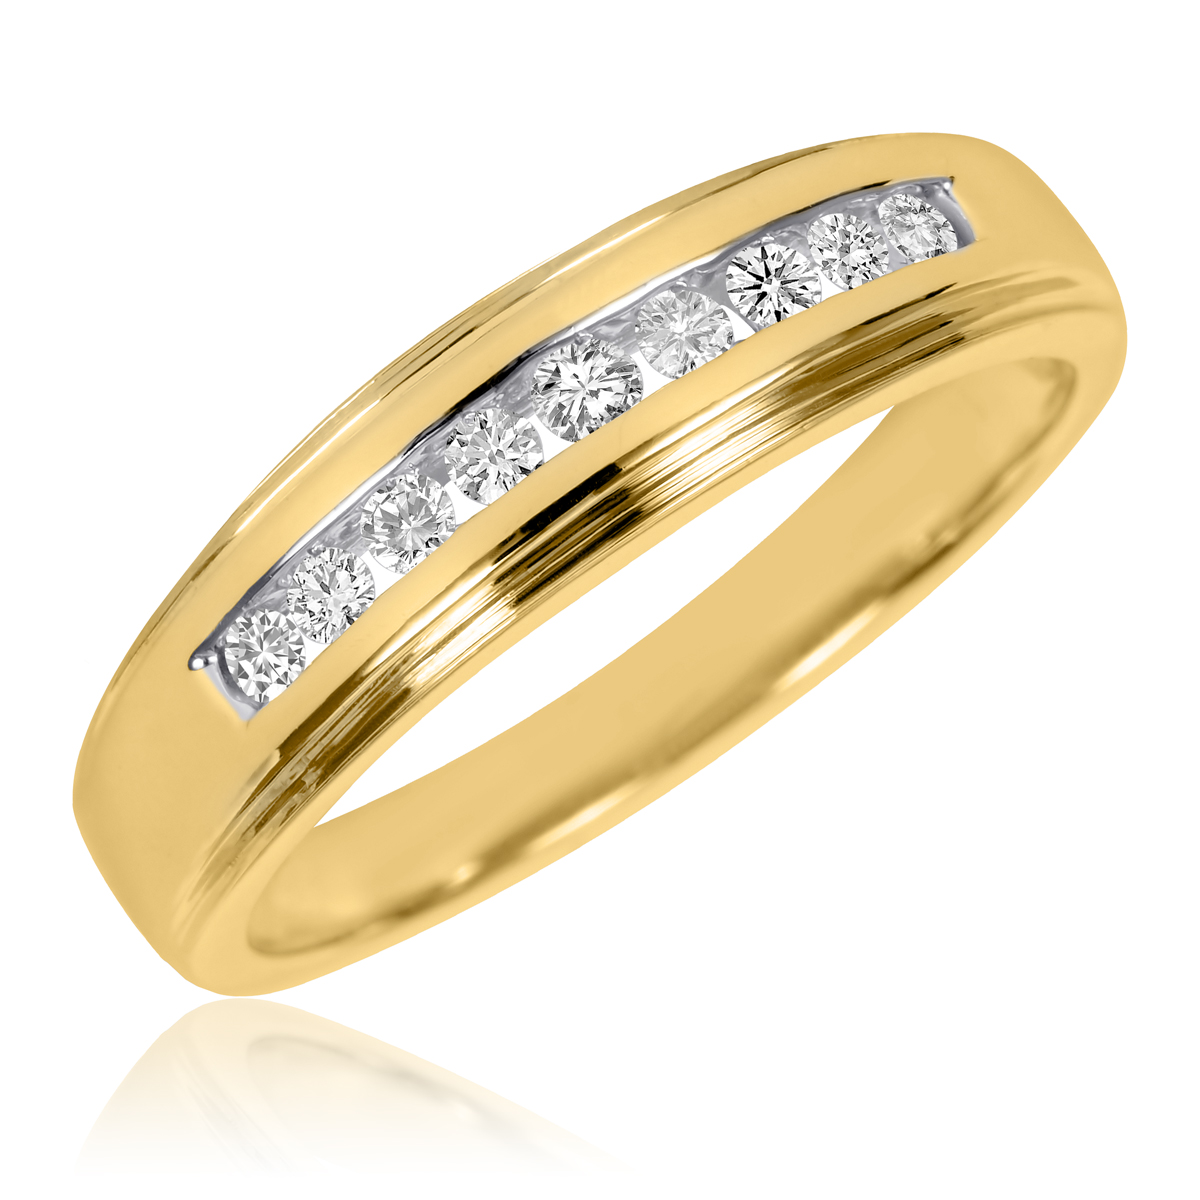 1/5 CT. T.W. Round Cut Diamond Men's Wedding Ring 14K Yellow Gold- Size 8